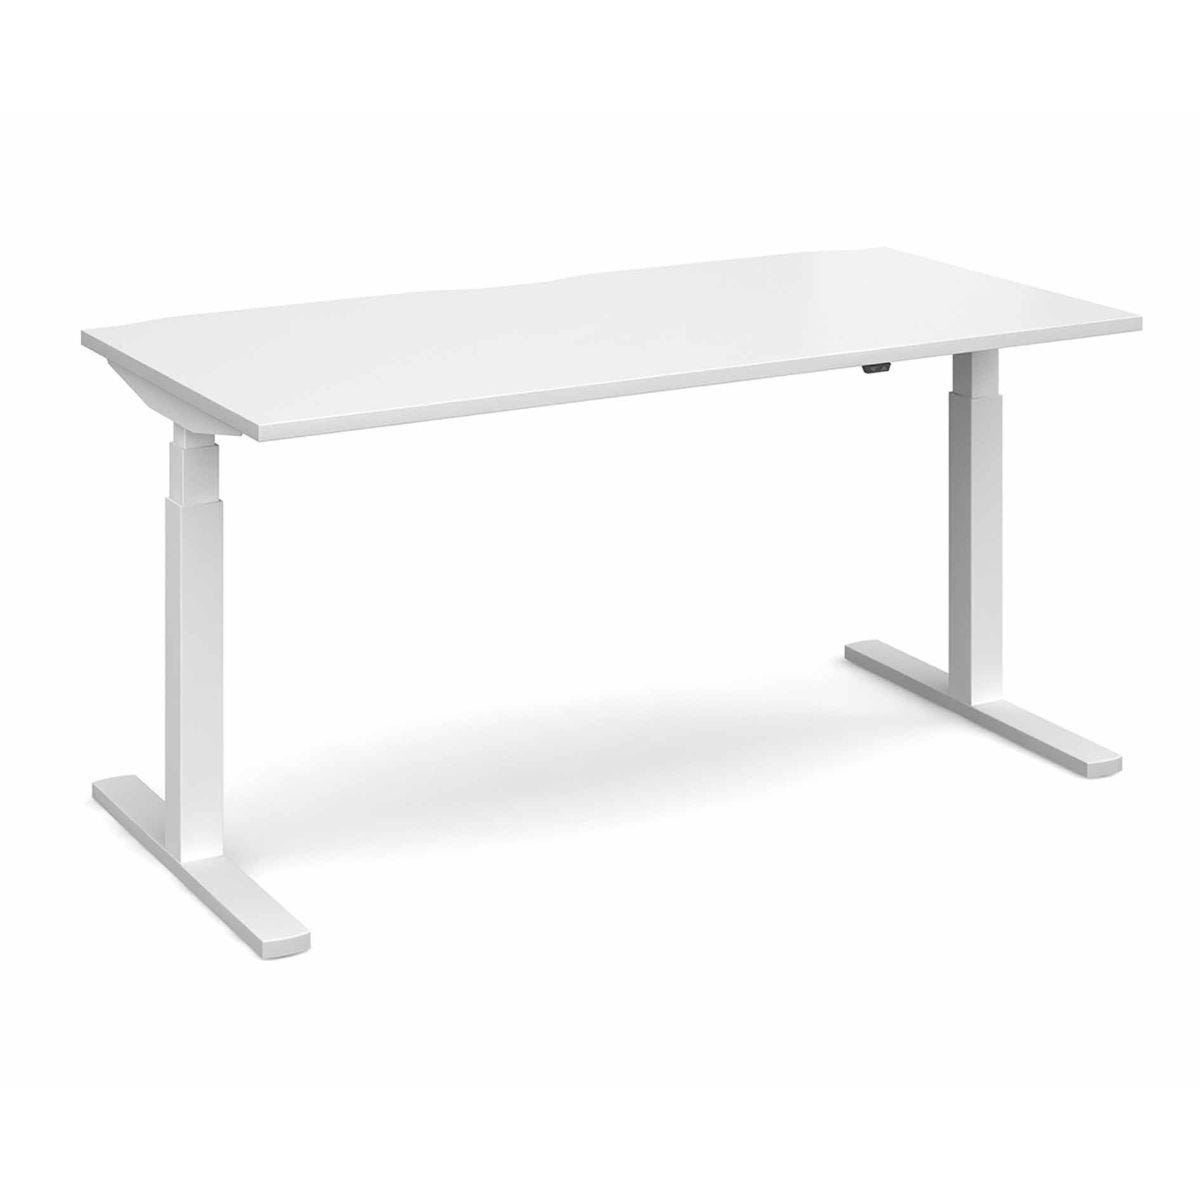 Elev8 Touch Straight Sit-Stand Desk 1600mm x 800mm White Frame White